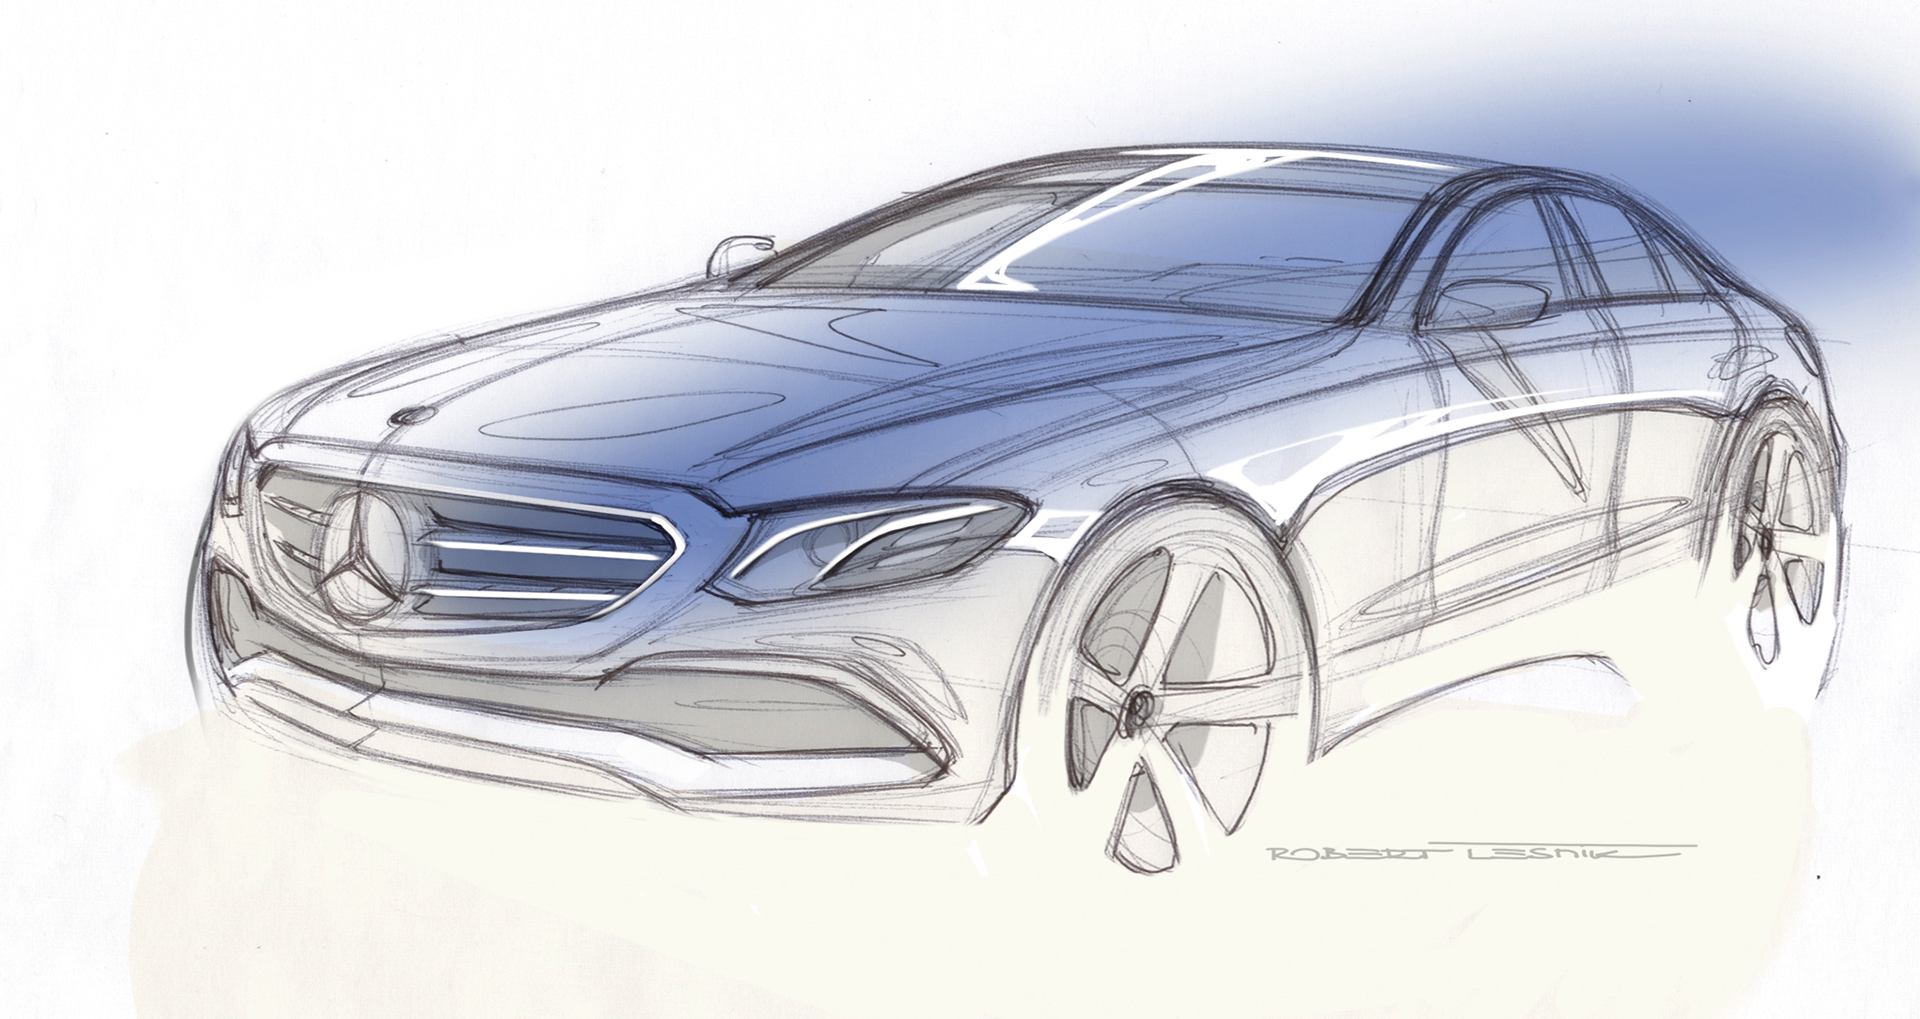 Mercedes-Benz E Class - 2016 - sketch design